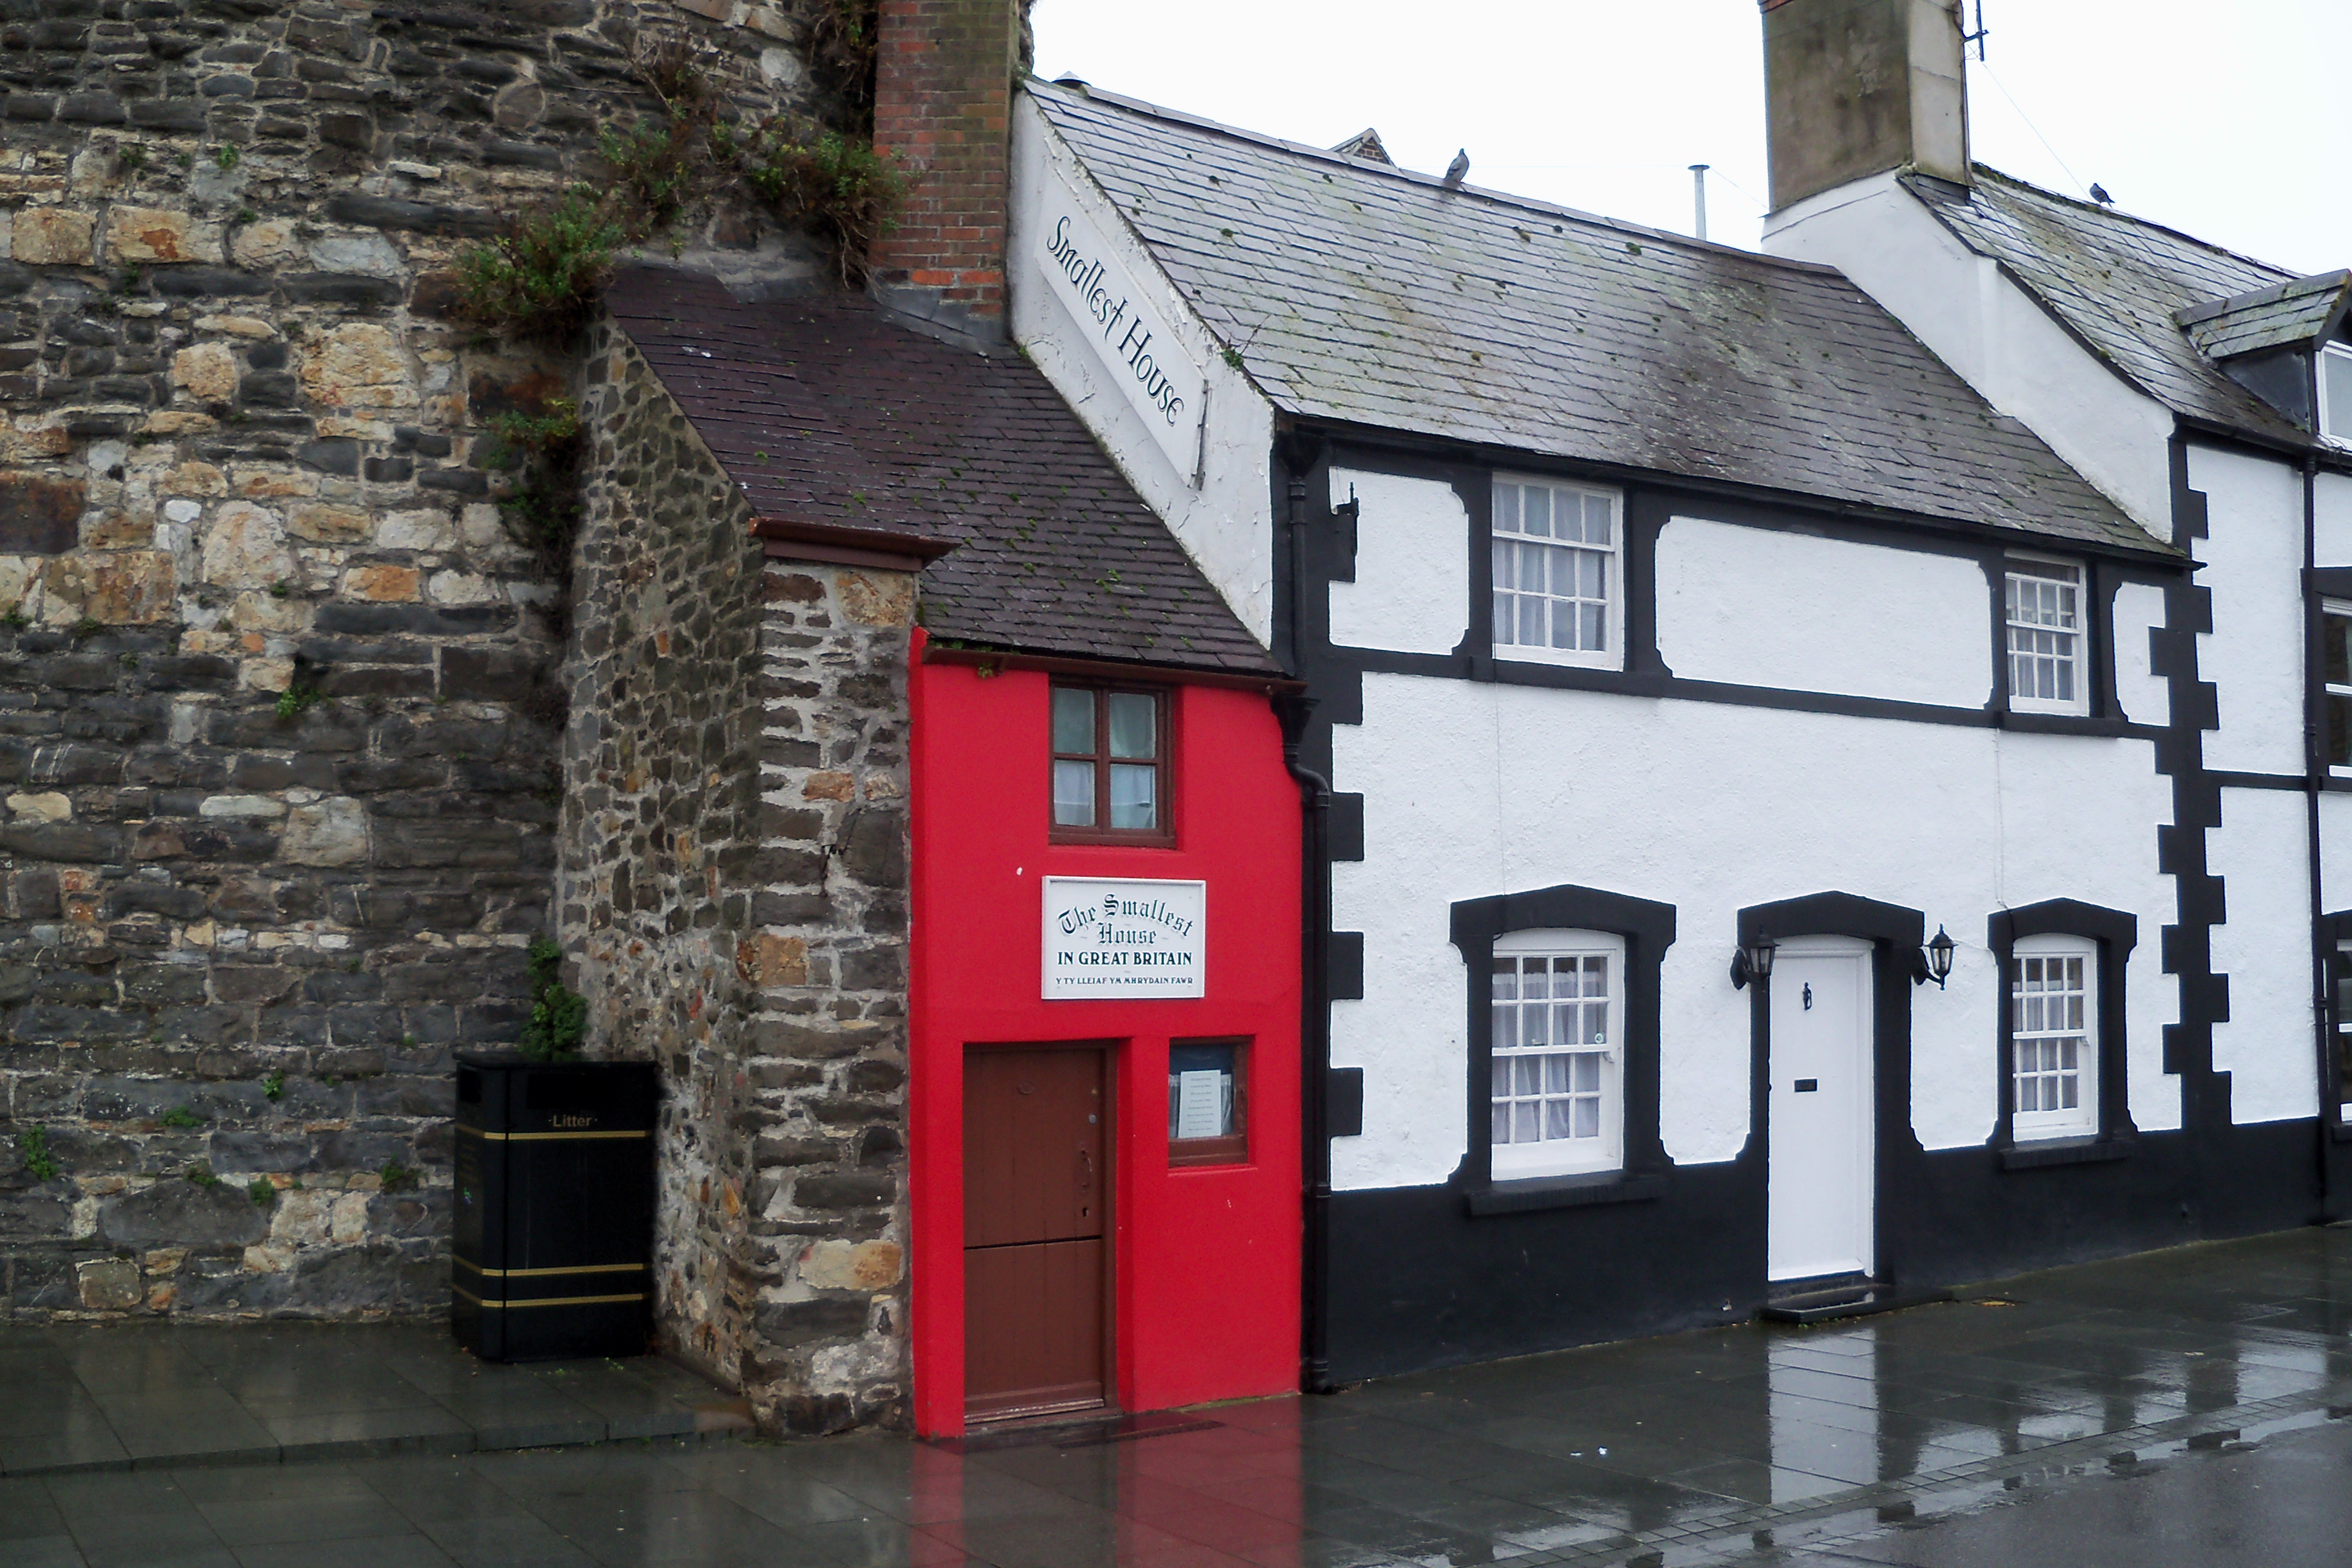 quay house great britain - Smallest House In The World 2016